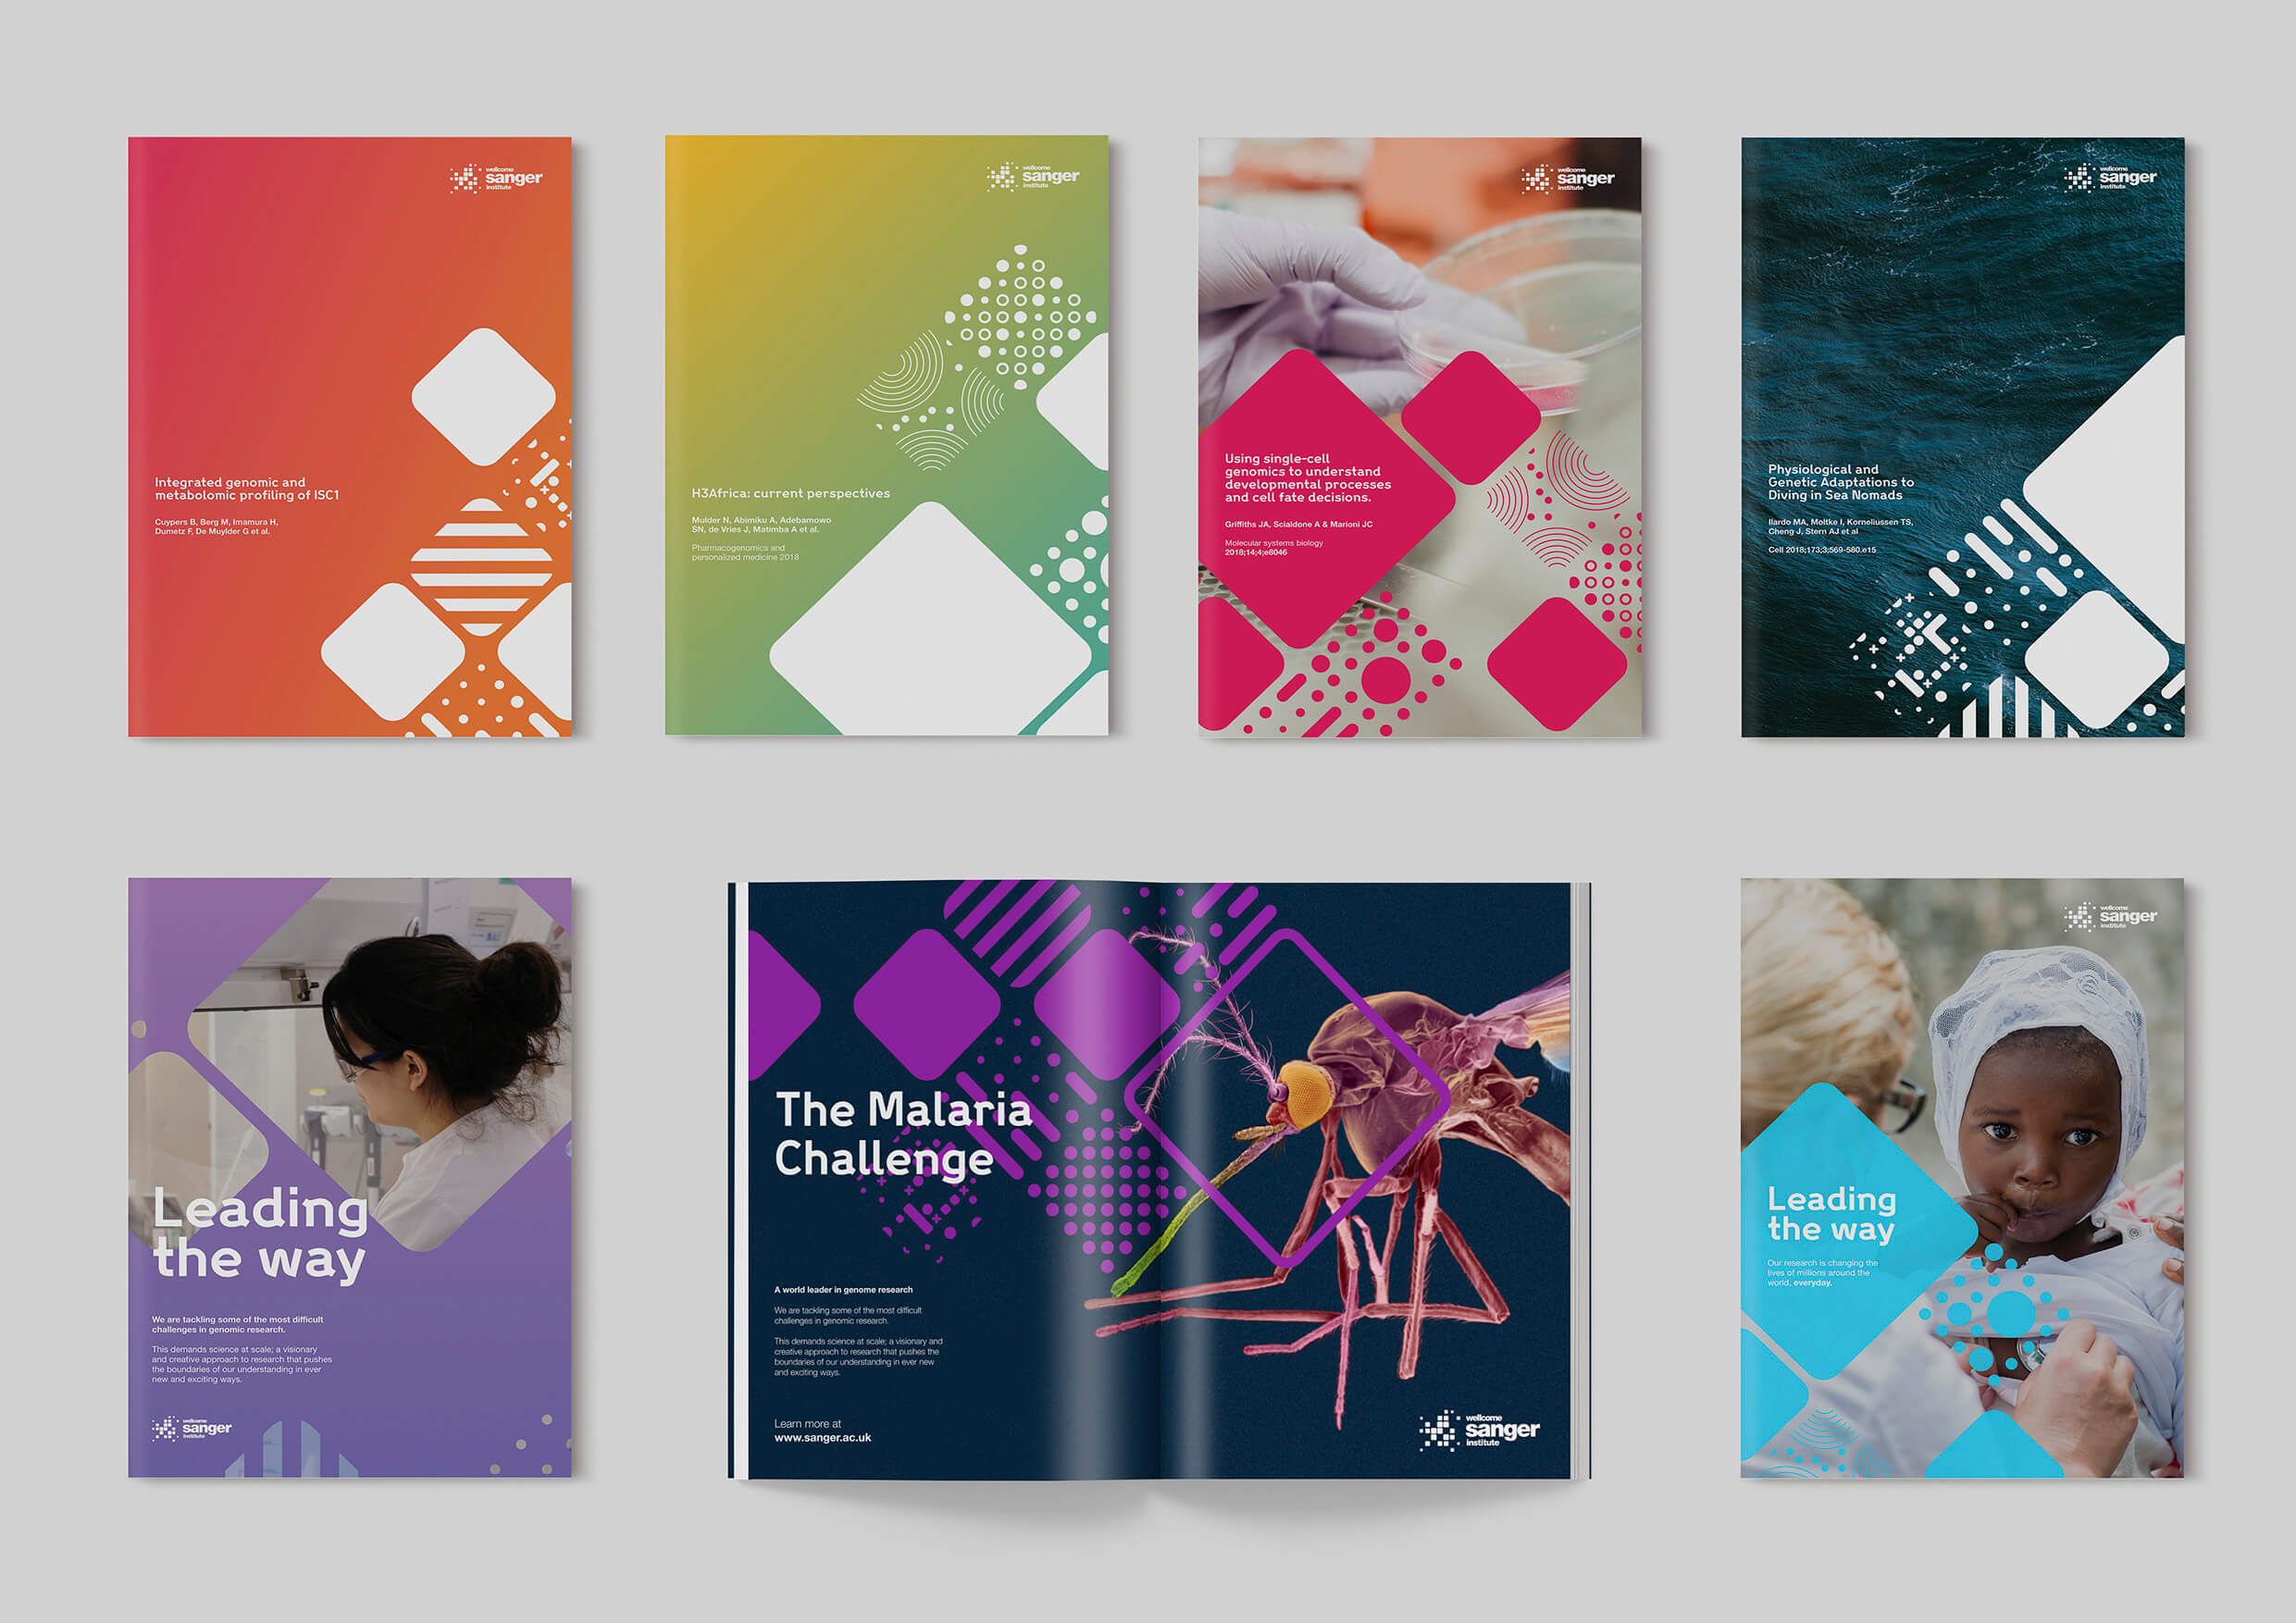 The Wellcome Sanger Institute Brand Refresh